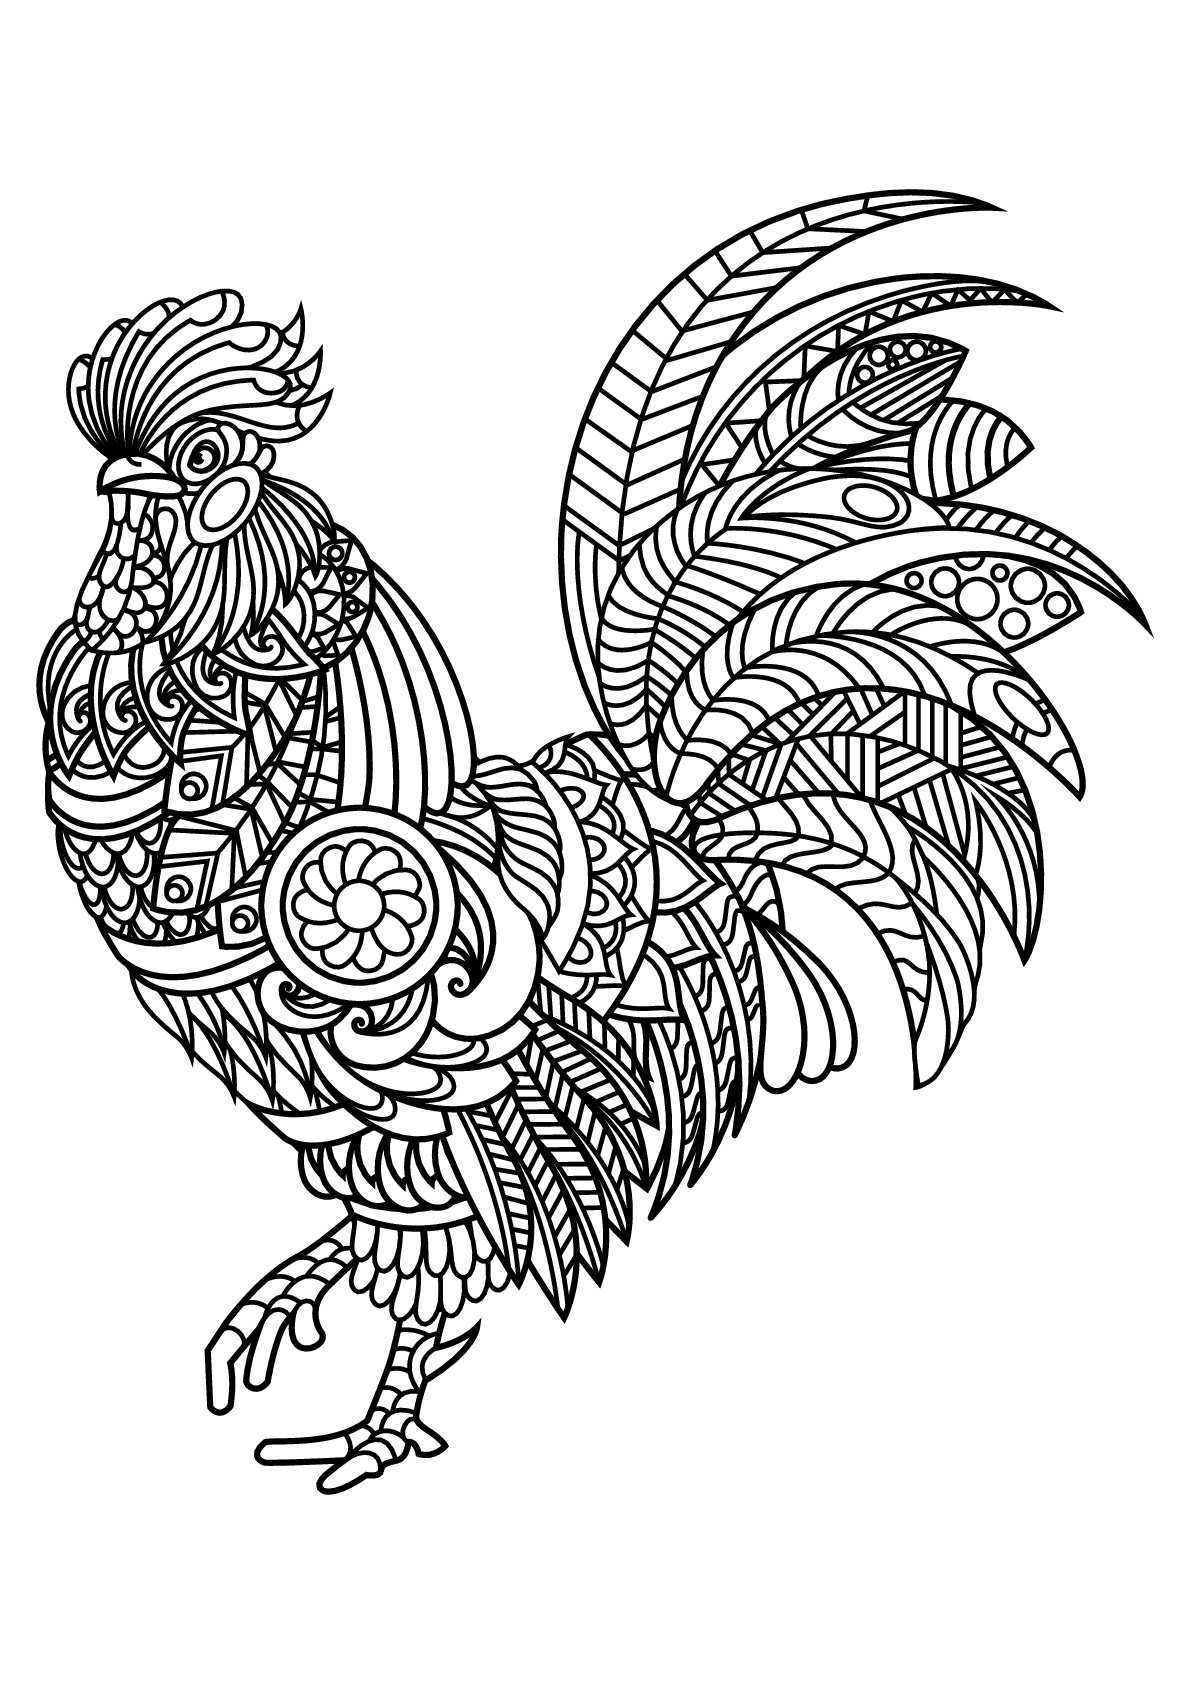 Coloring free book cock